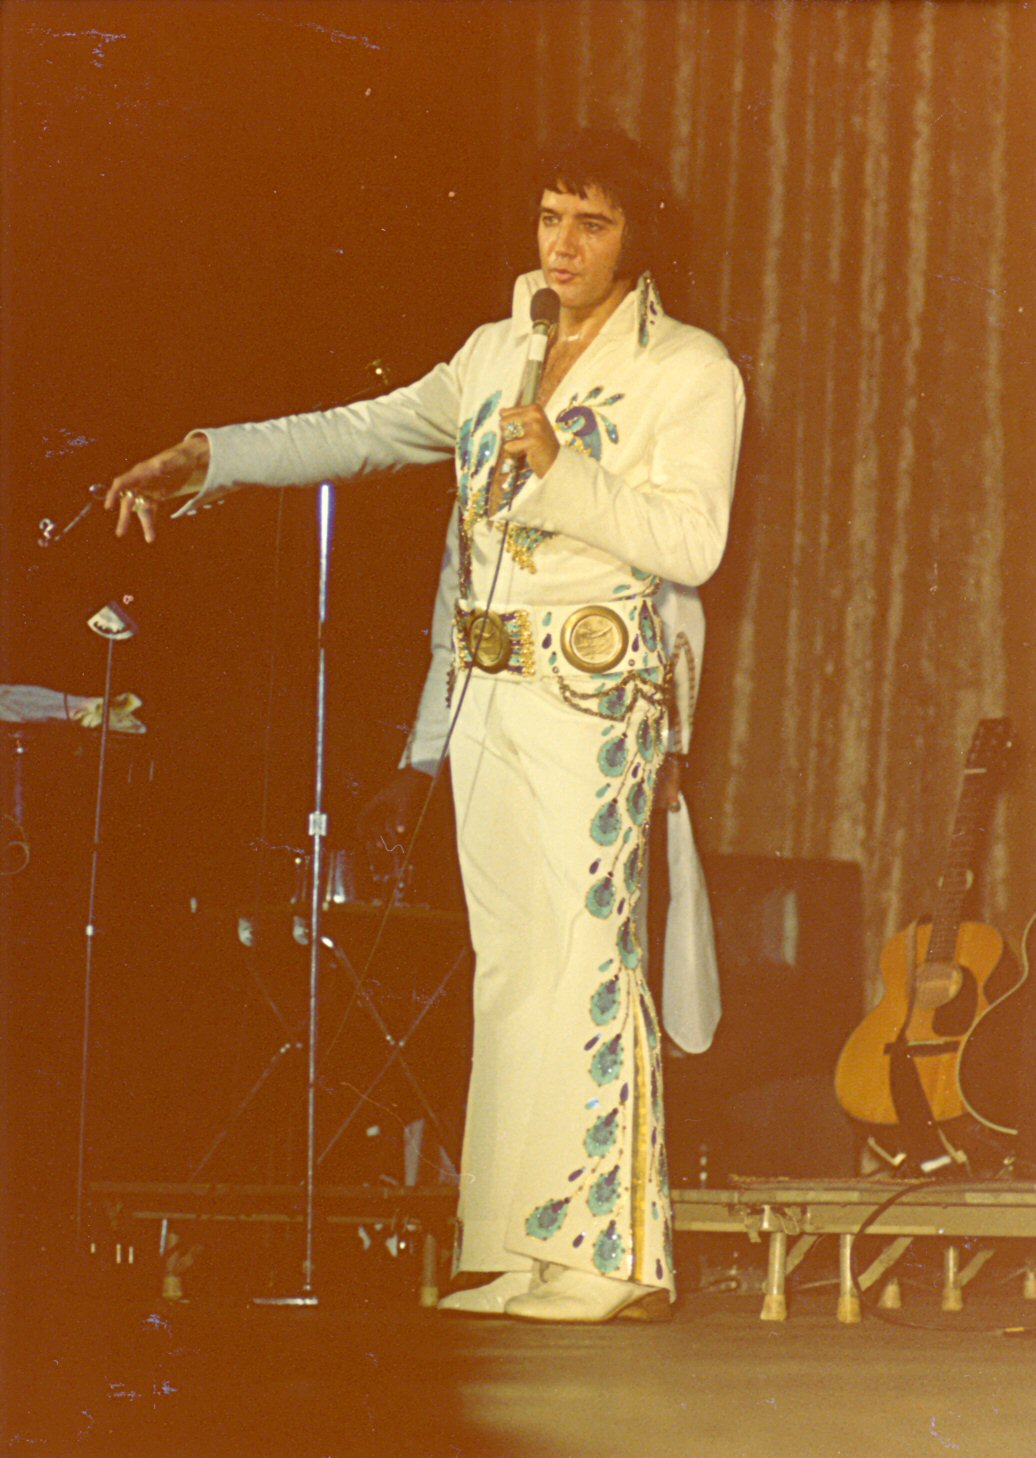 https://i0.wp.com/www.elvisconcerts.com/pictures/s74062102.jpg